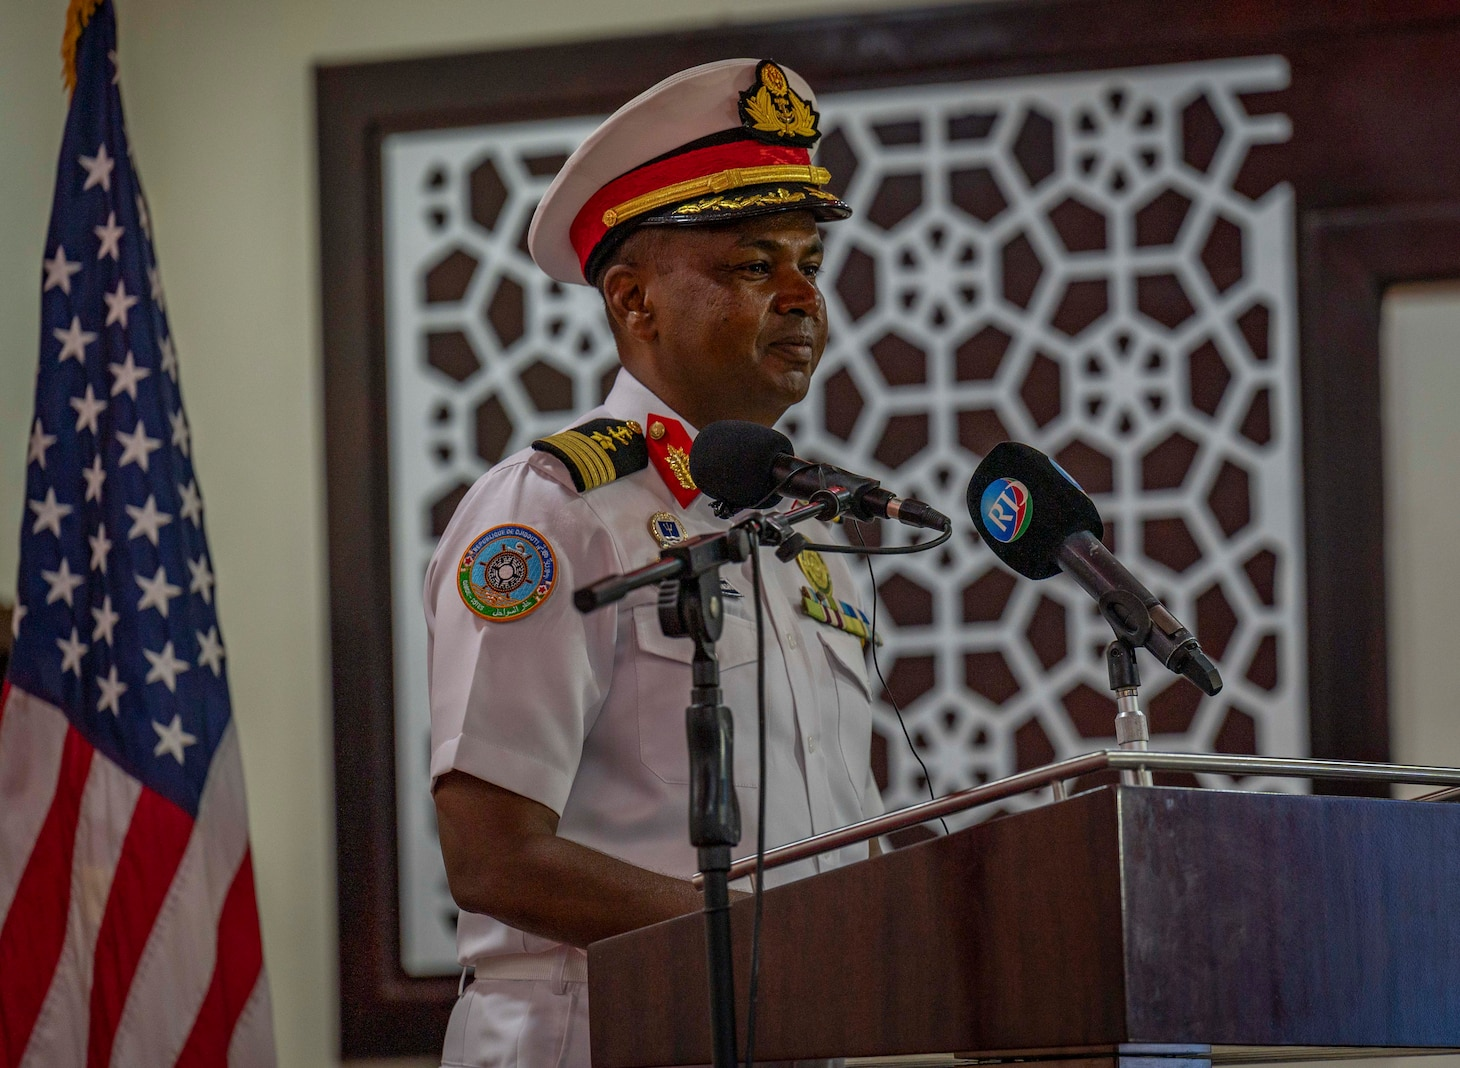 (July 25, 2021) Djiboutian Navy Commander Col. Ahmed Daher Djama provides remarks during the exercise Cutlass Express 2021 opening ceremony held at the Doraleh Coast Guard training center in Djibouti, Djibouti, July 25, 2021. Cutlass Express is designed to improve regional cooperation, maritime domain awareness and information sharing practices to increase capabilities between the U.S., East African and Western Indian Ocean nations to counter illicit maritime activity.